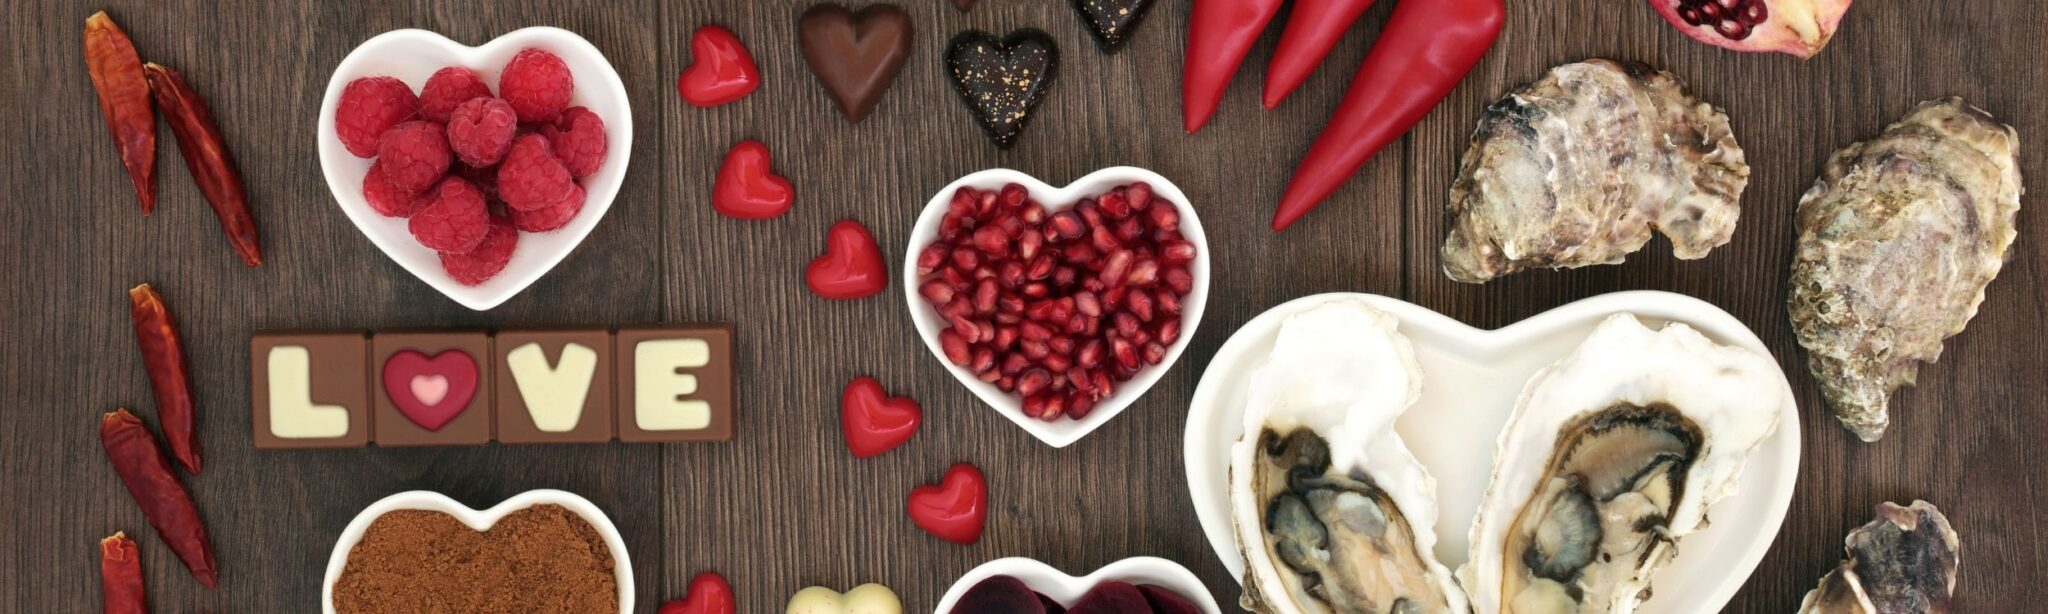 EATING WELL MEANS LOVING WELL: FOUR FOODS THAT INSPIRE A BETTER LOVE LIFE